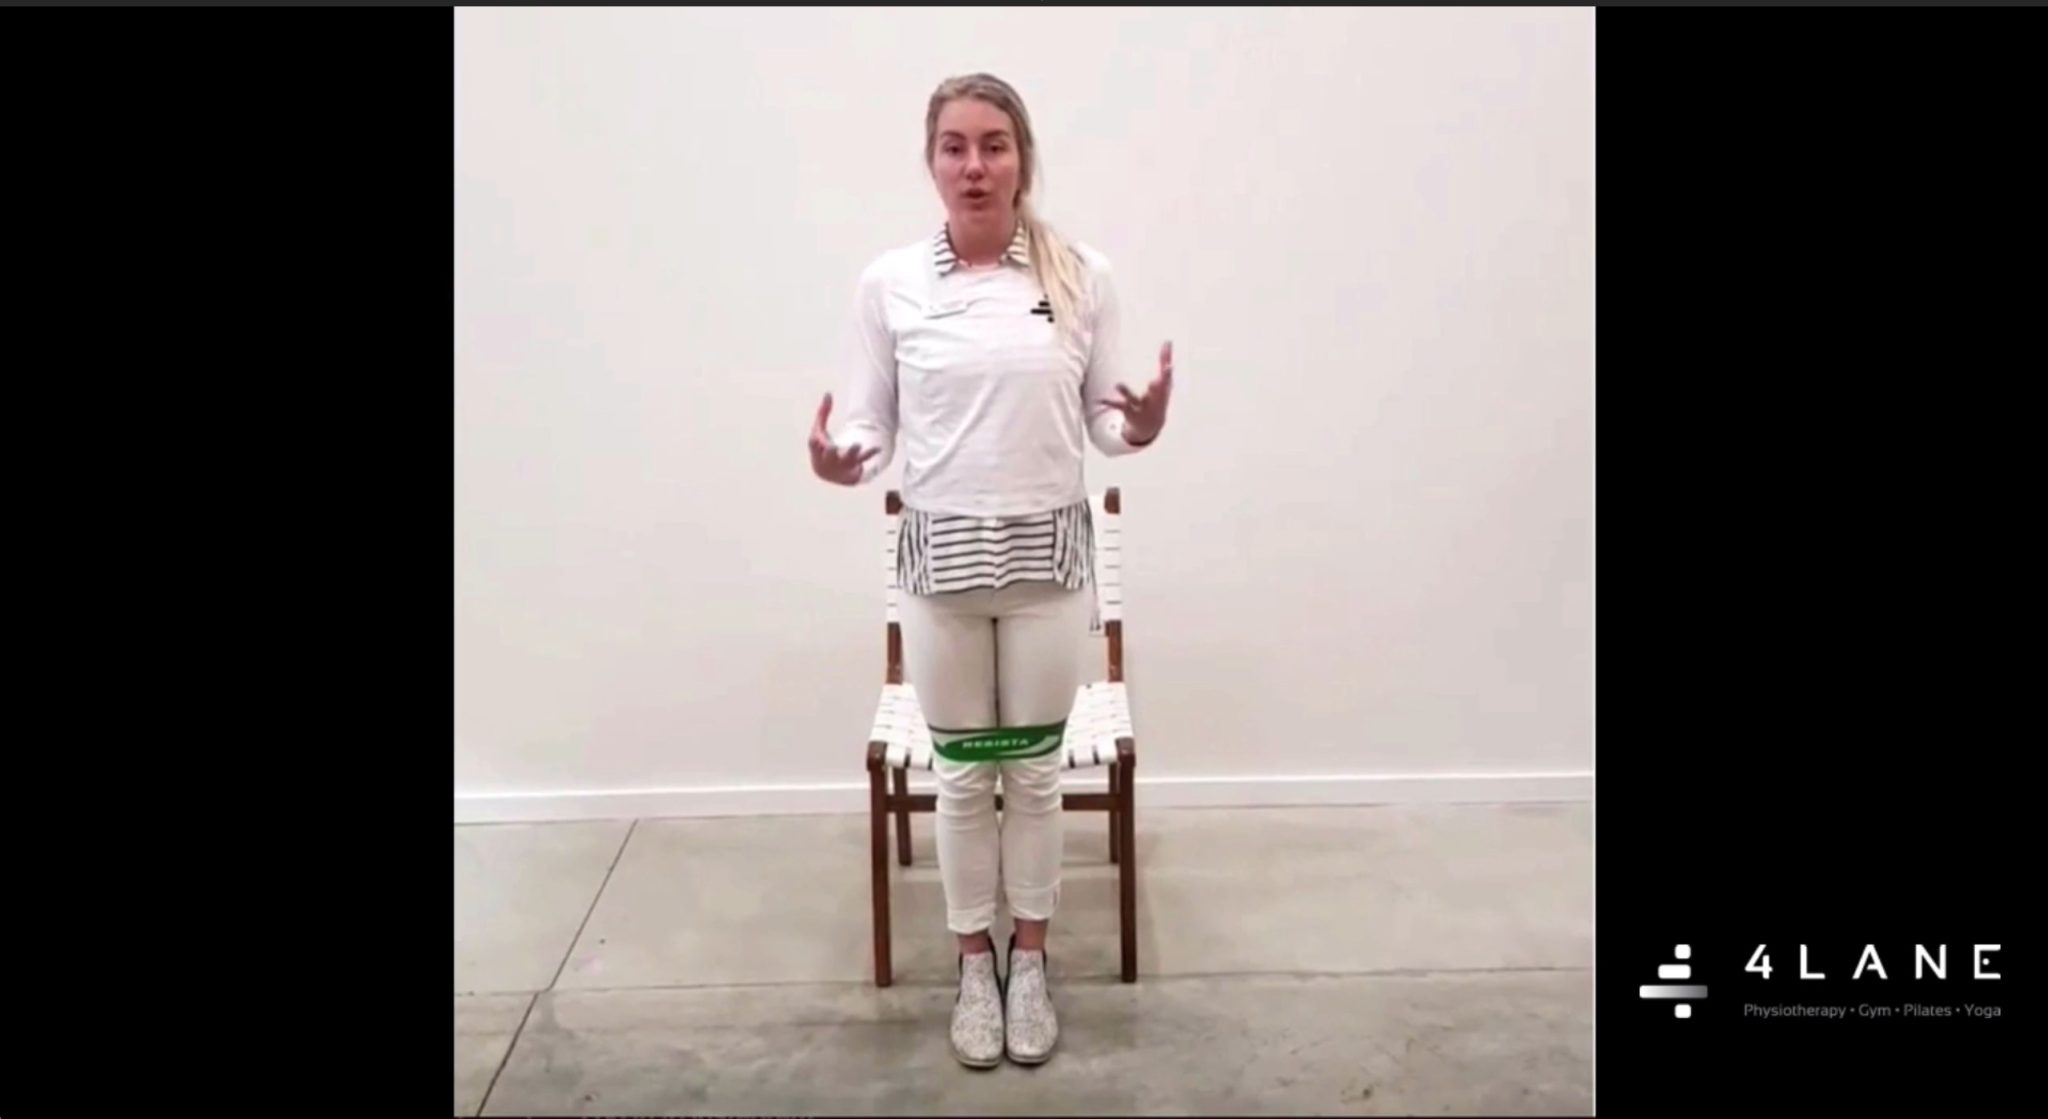 An exercise for Patellofemoral joint pain - knee pain